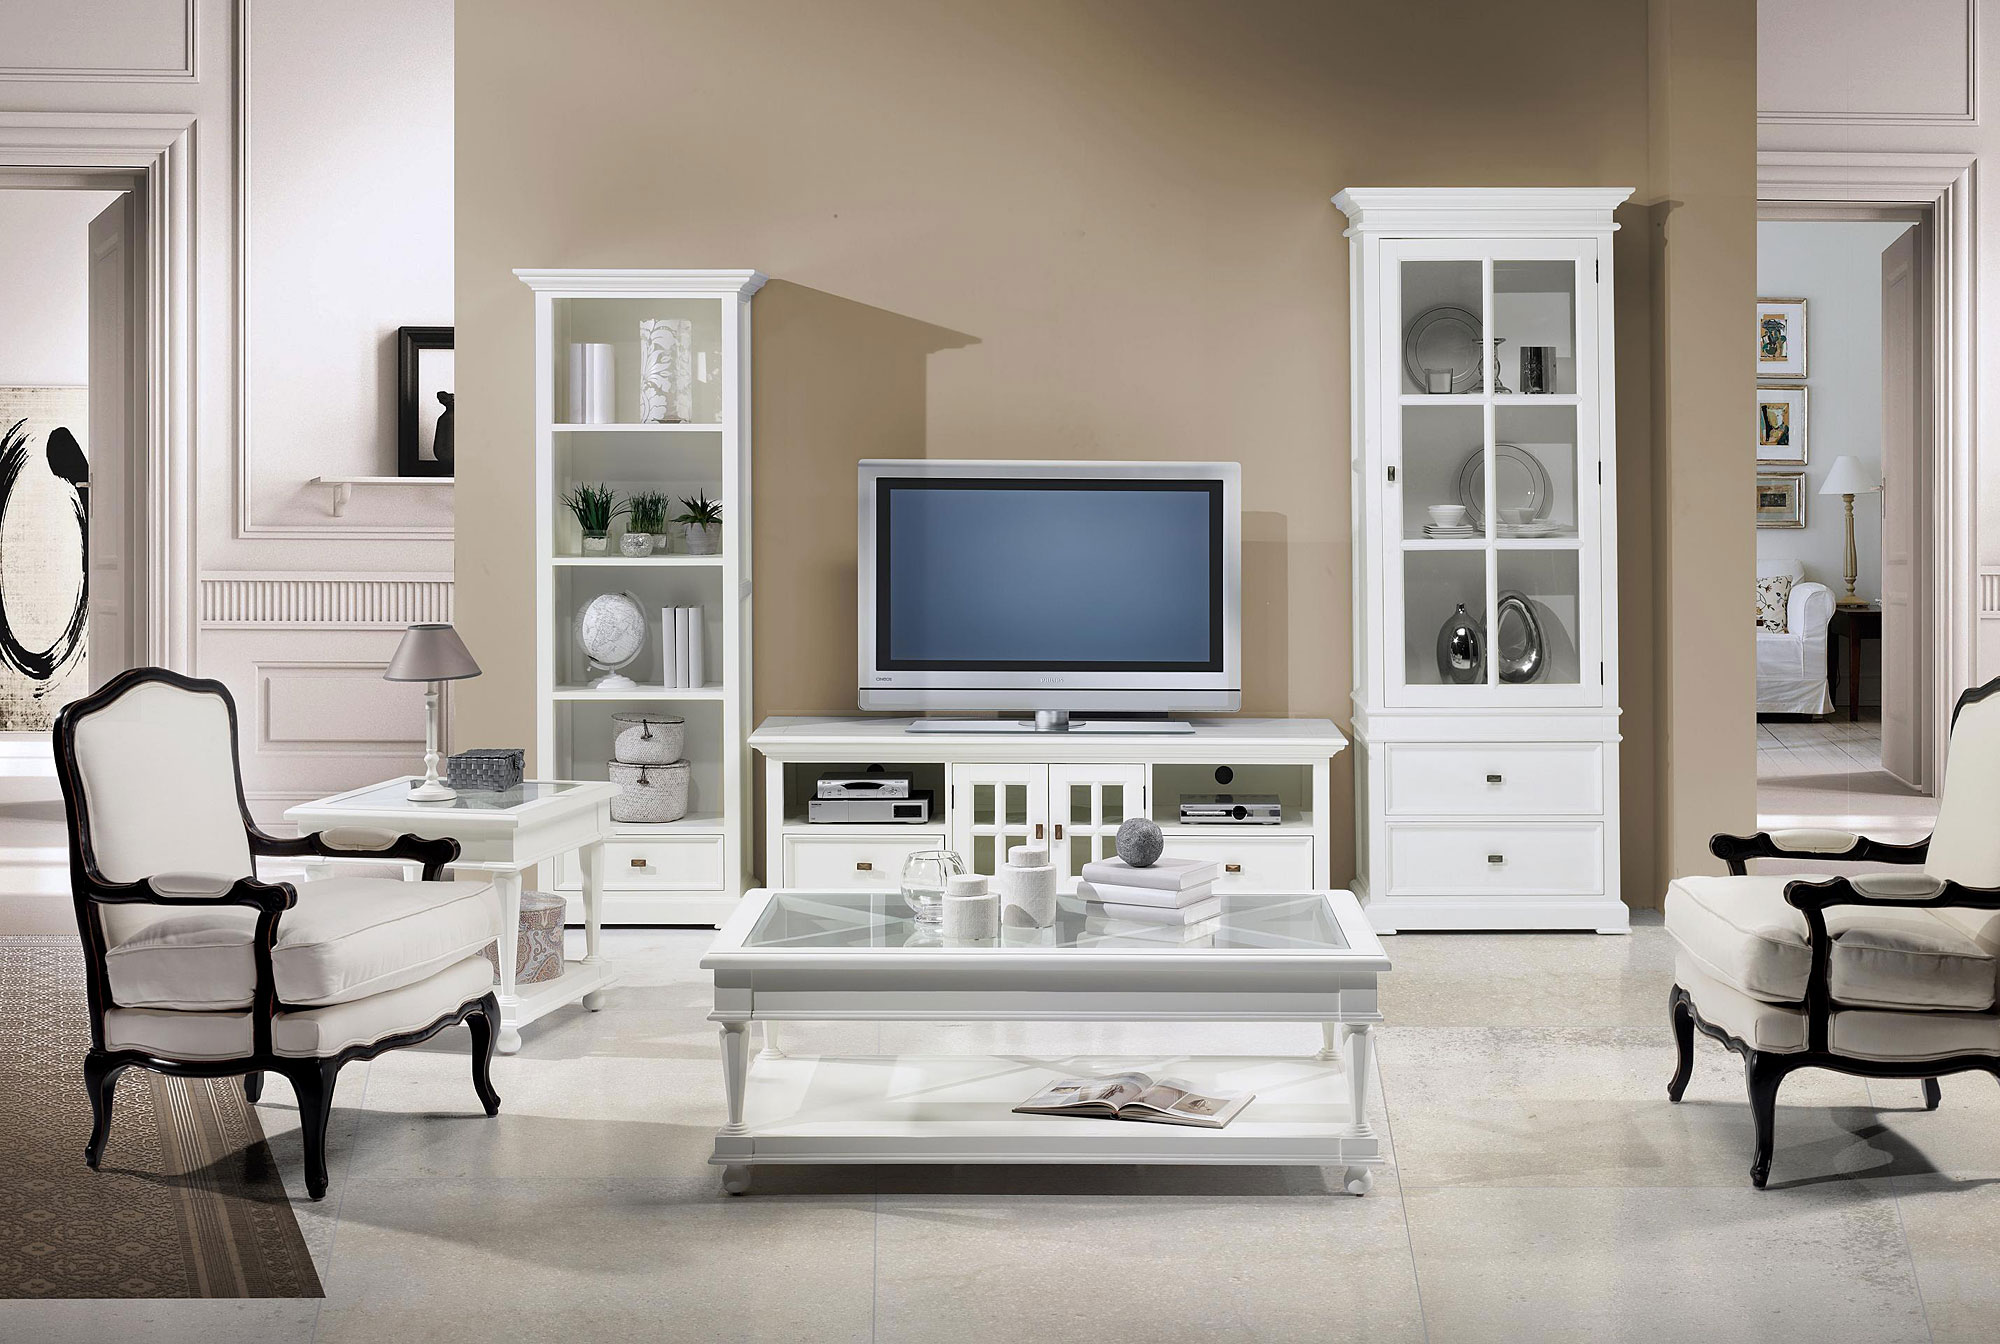 Decoracion mueble sofa muebles salon blanco - Decoracion salon blanco ...